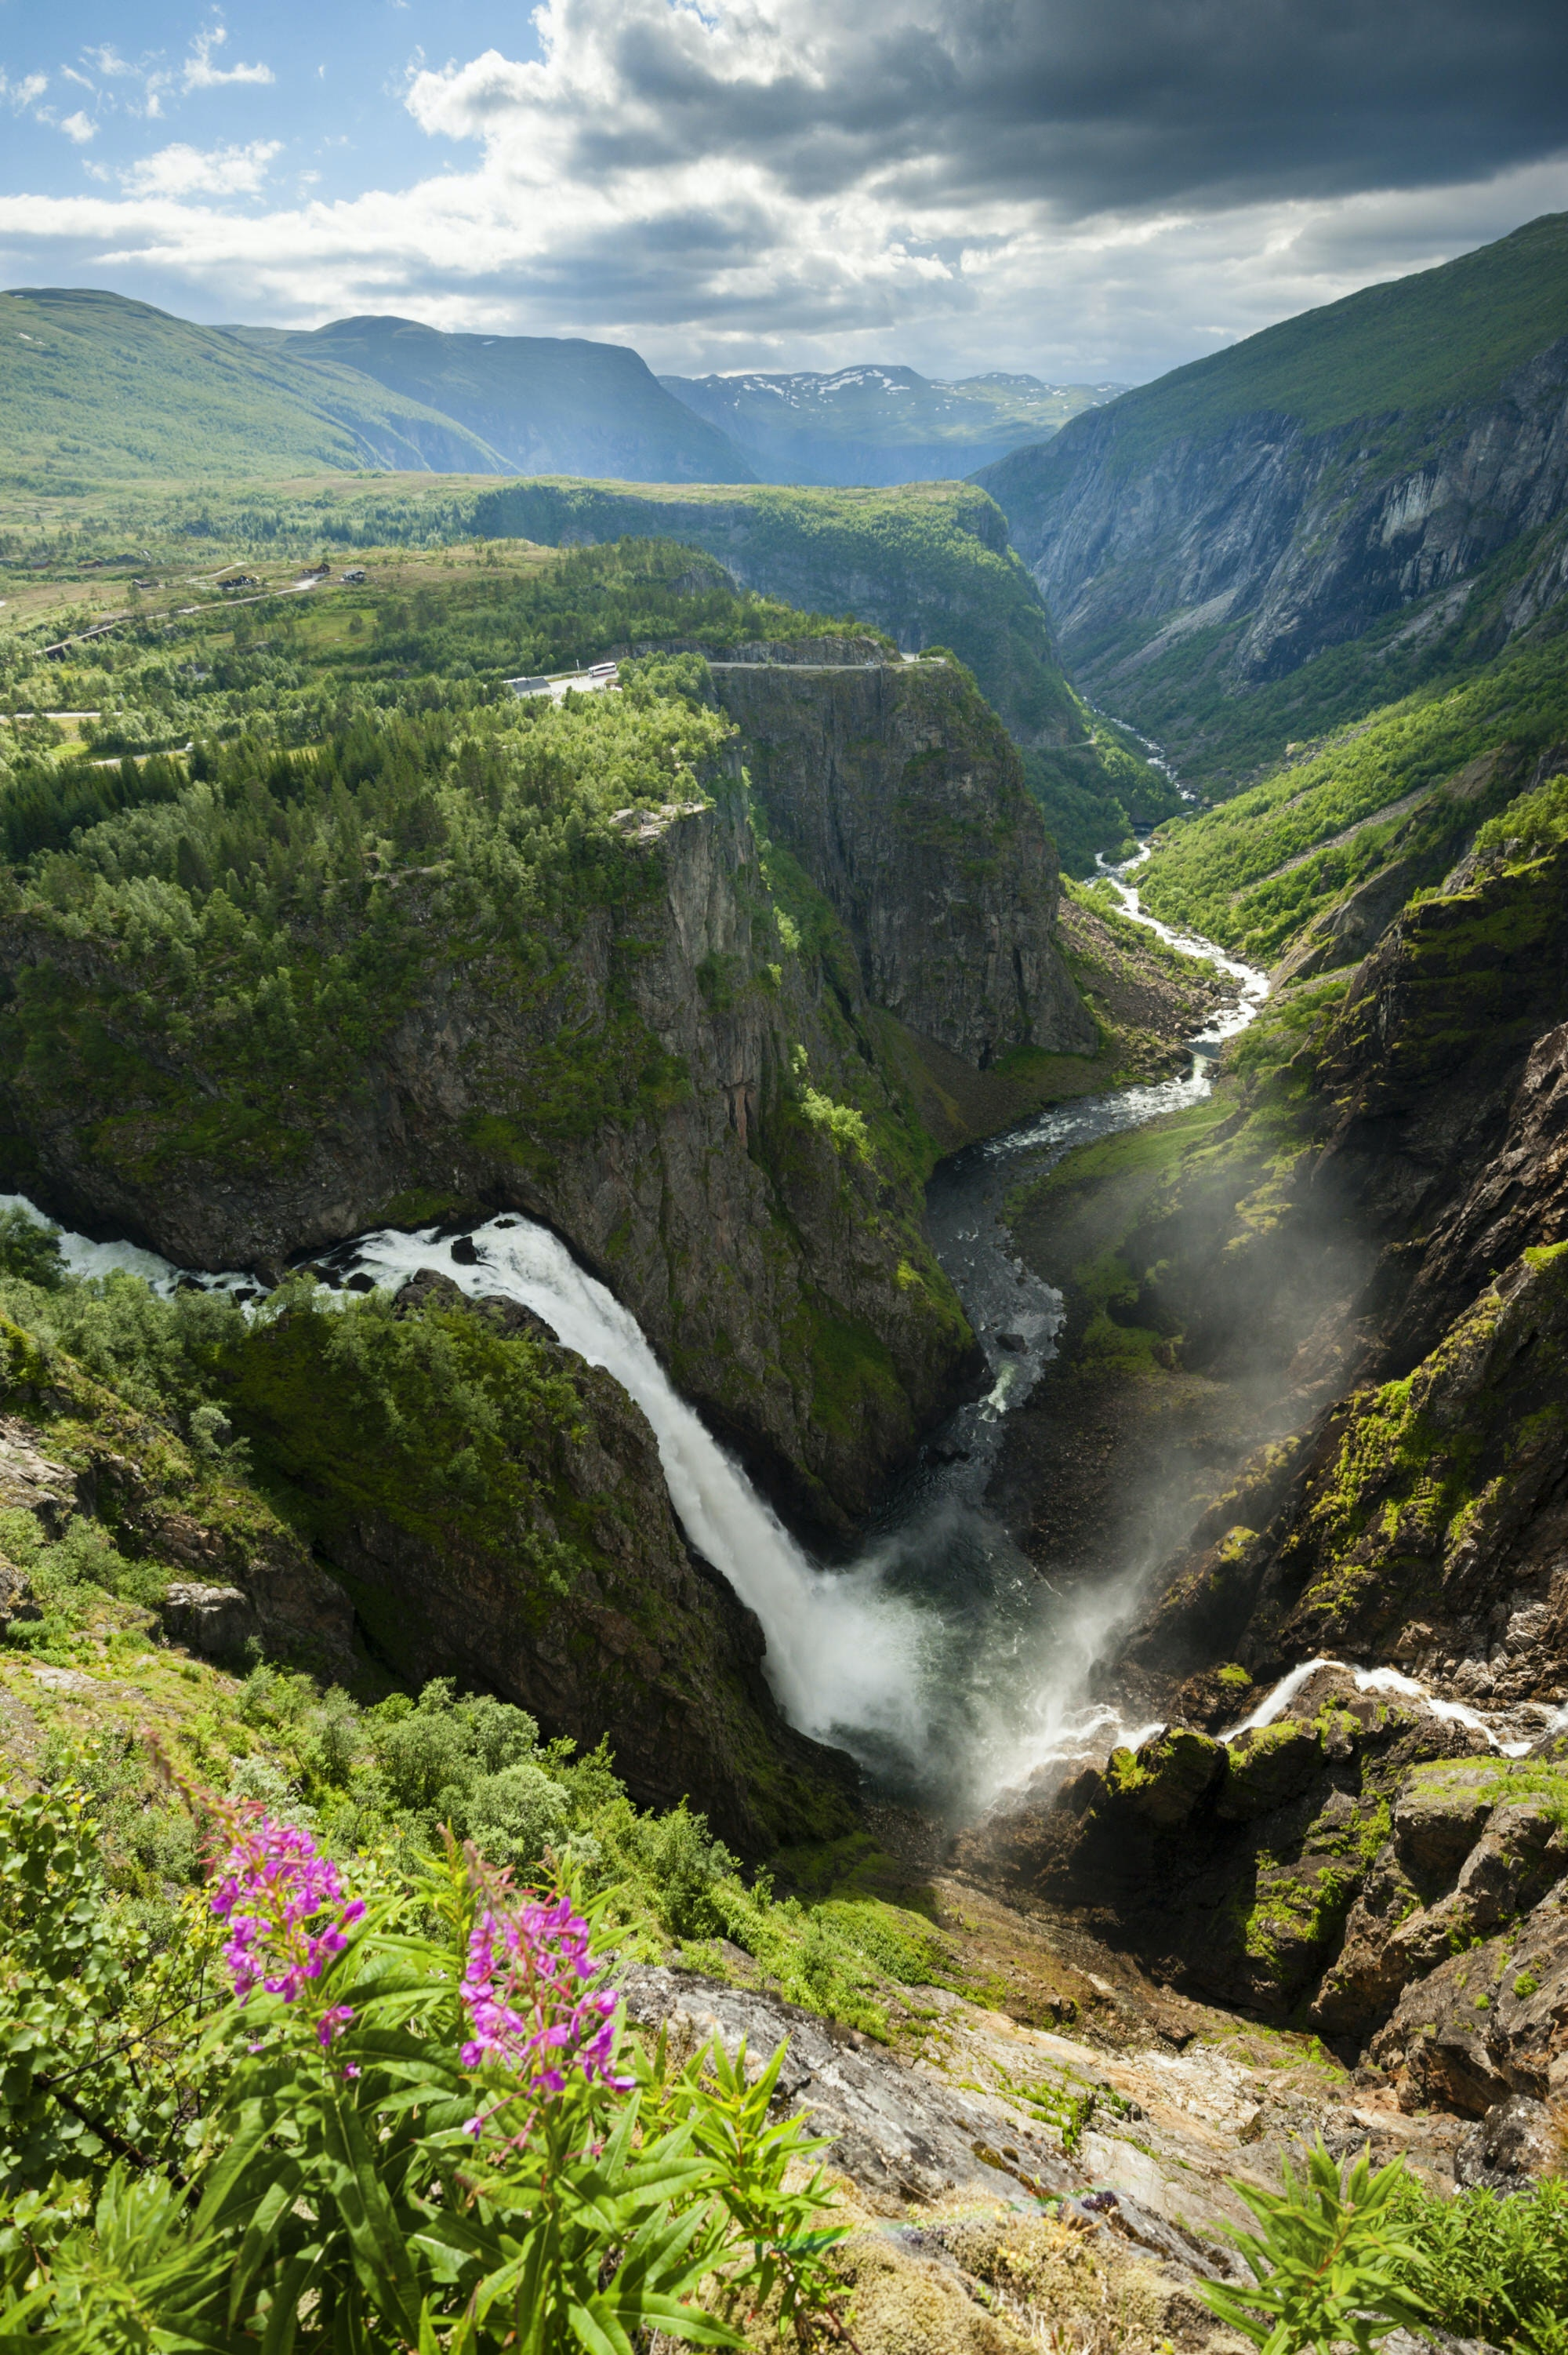 Overview of Voringsfossen waterfall near Eidfjord © Justin Foulkes / Lonely Planet